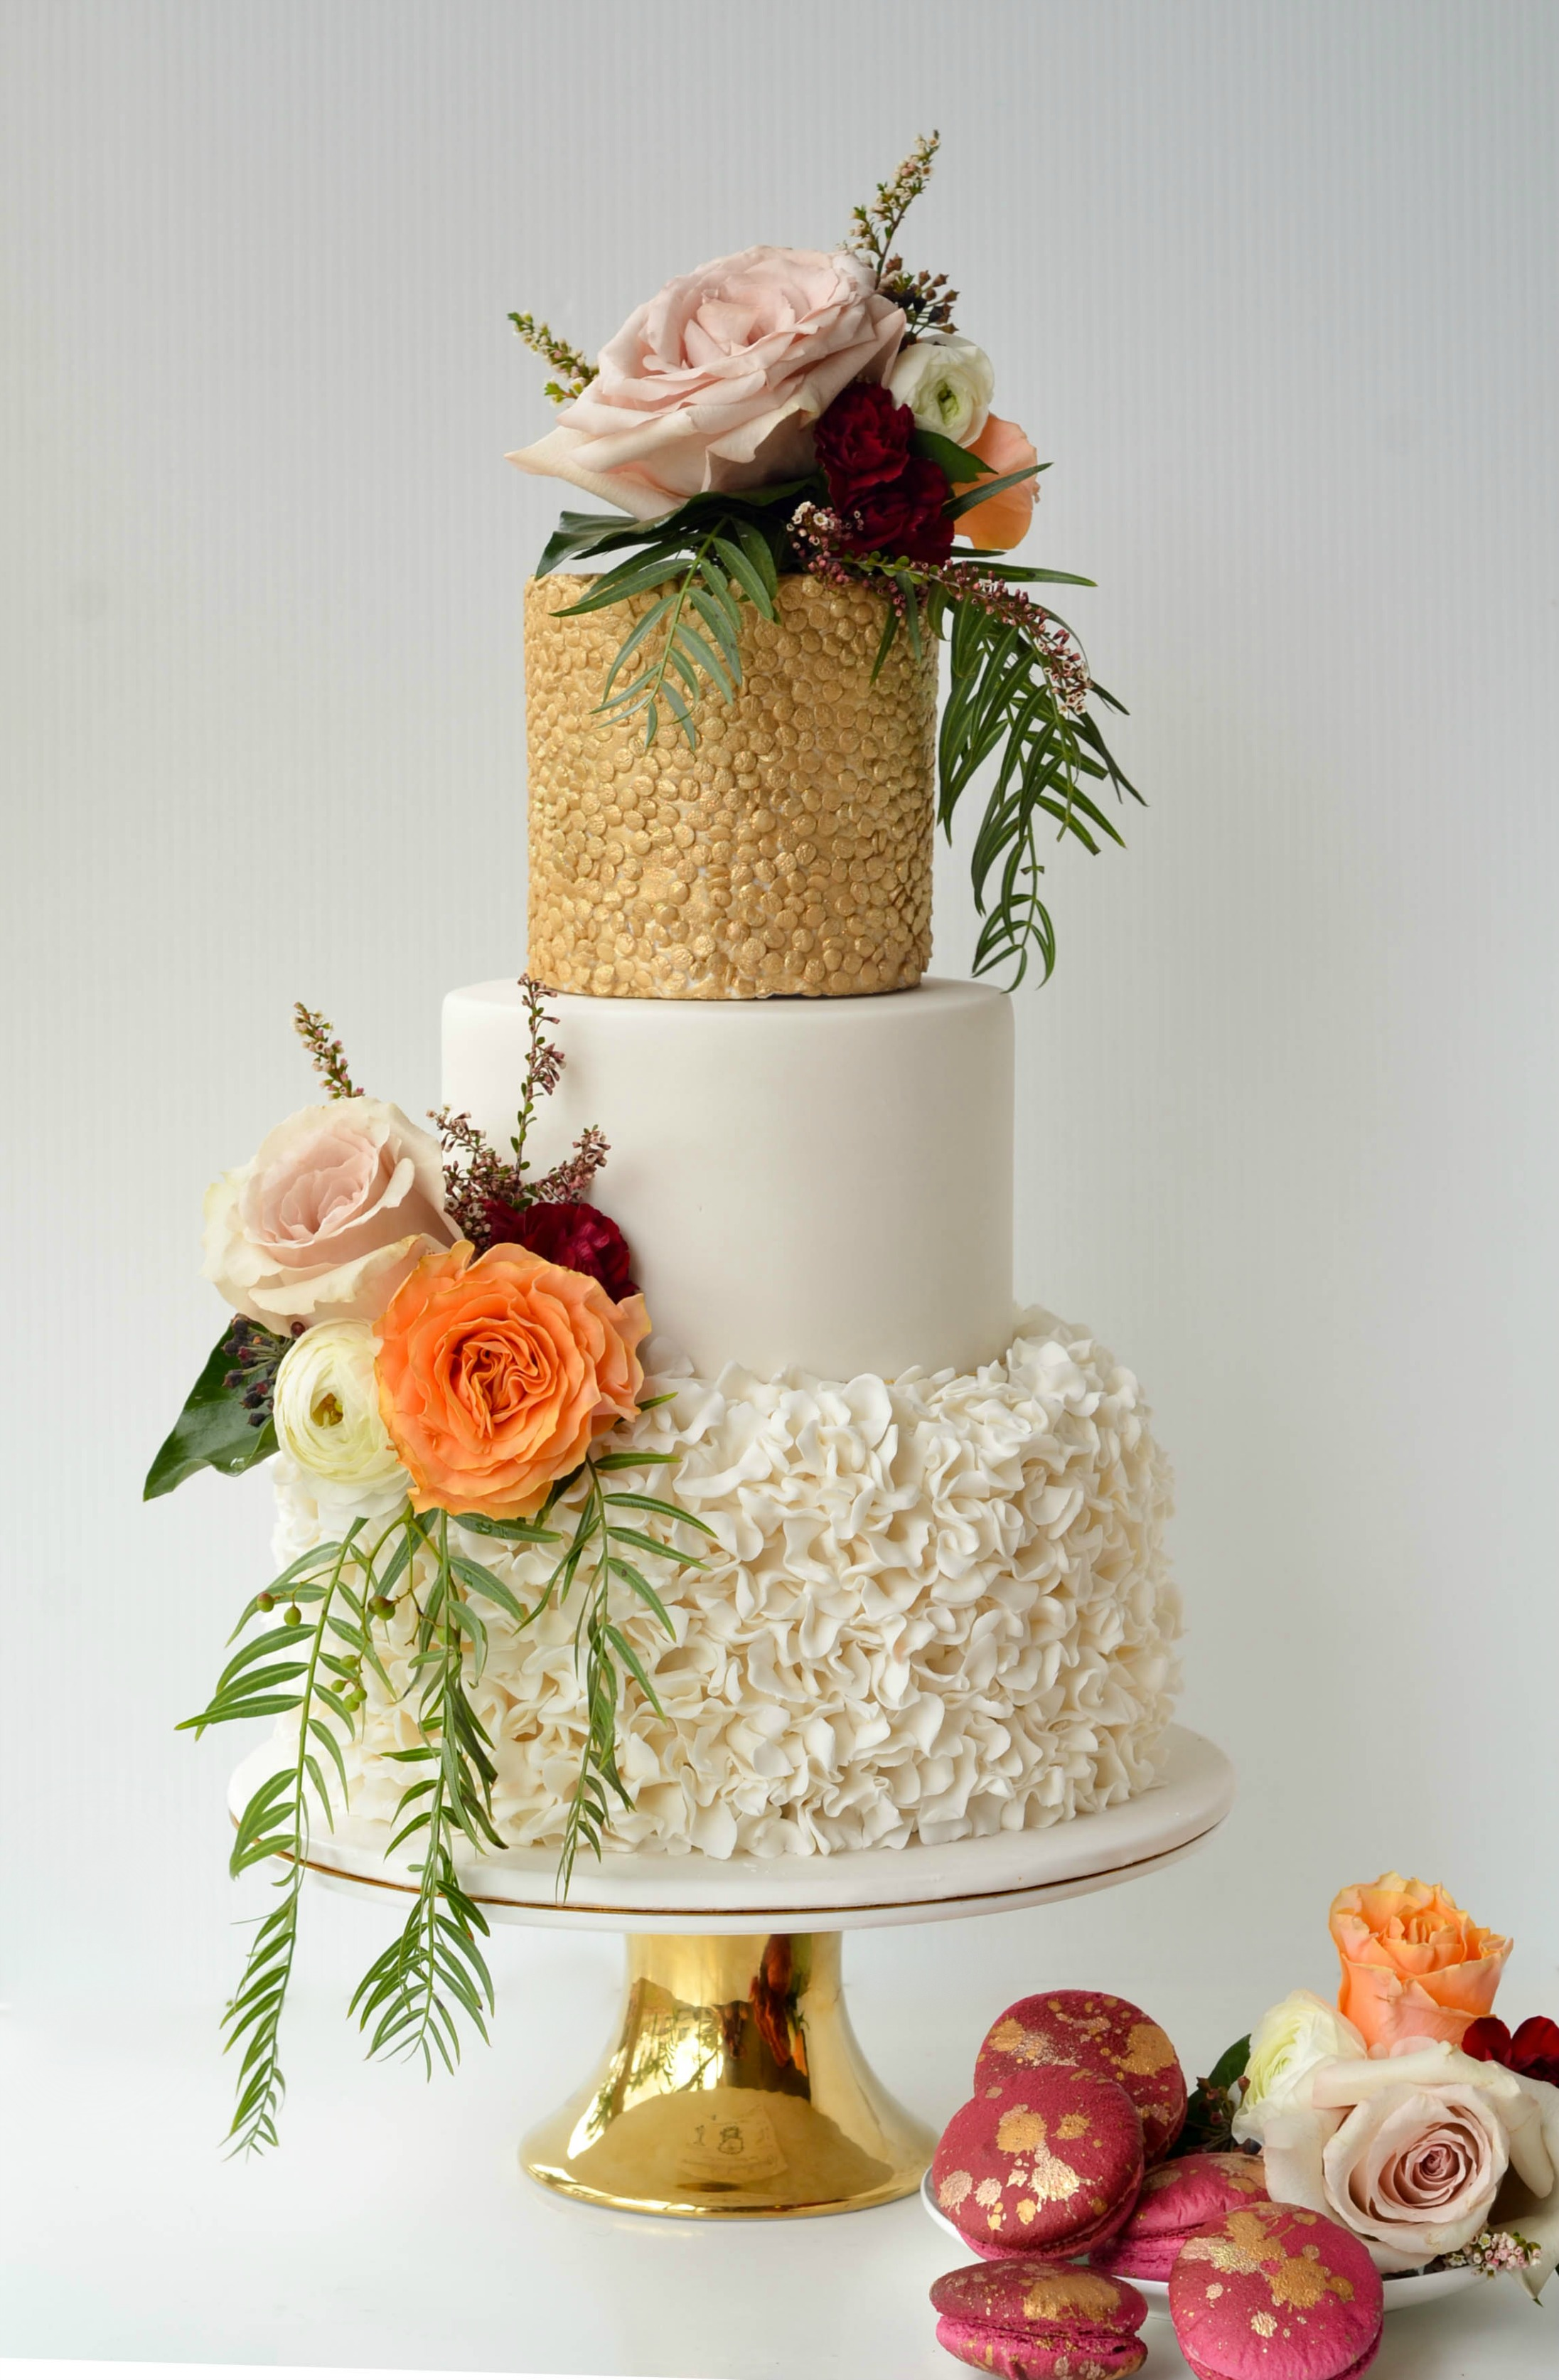 Awesome Wedding Cake Pictures In Nigeria Festooning - The Wedding ...